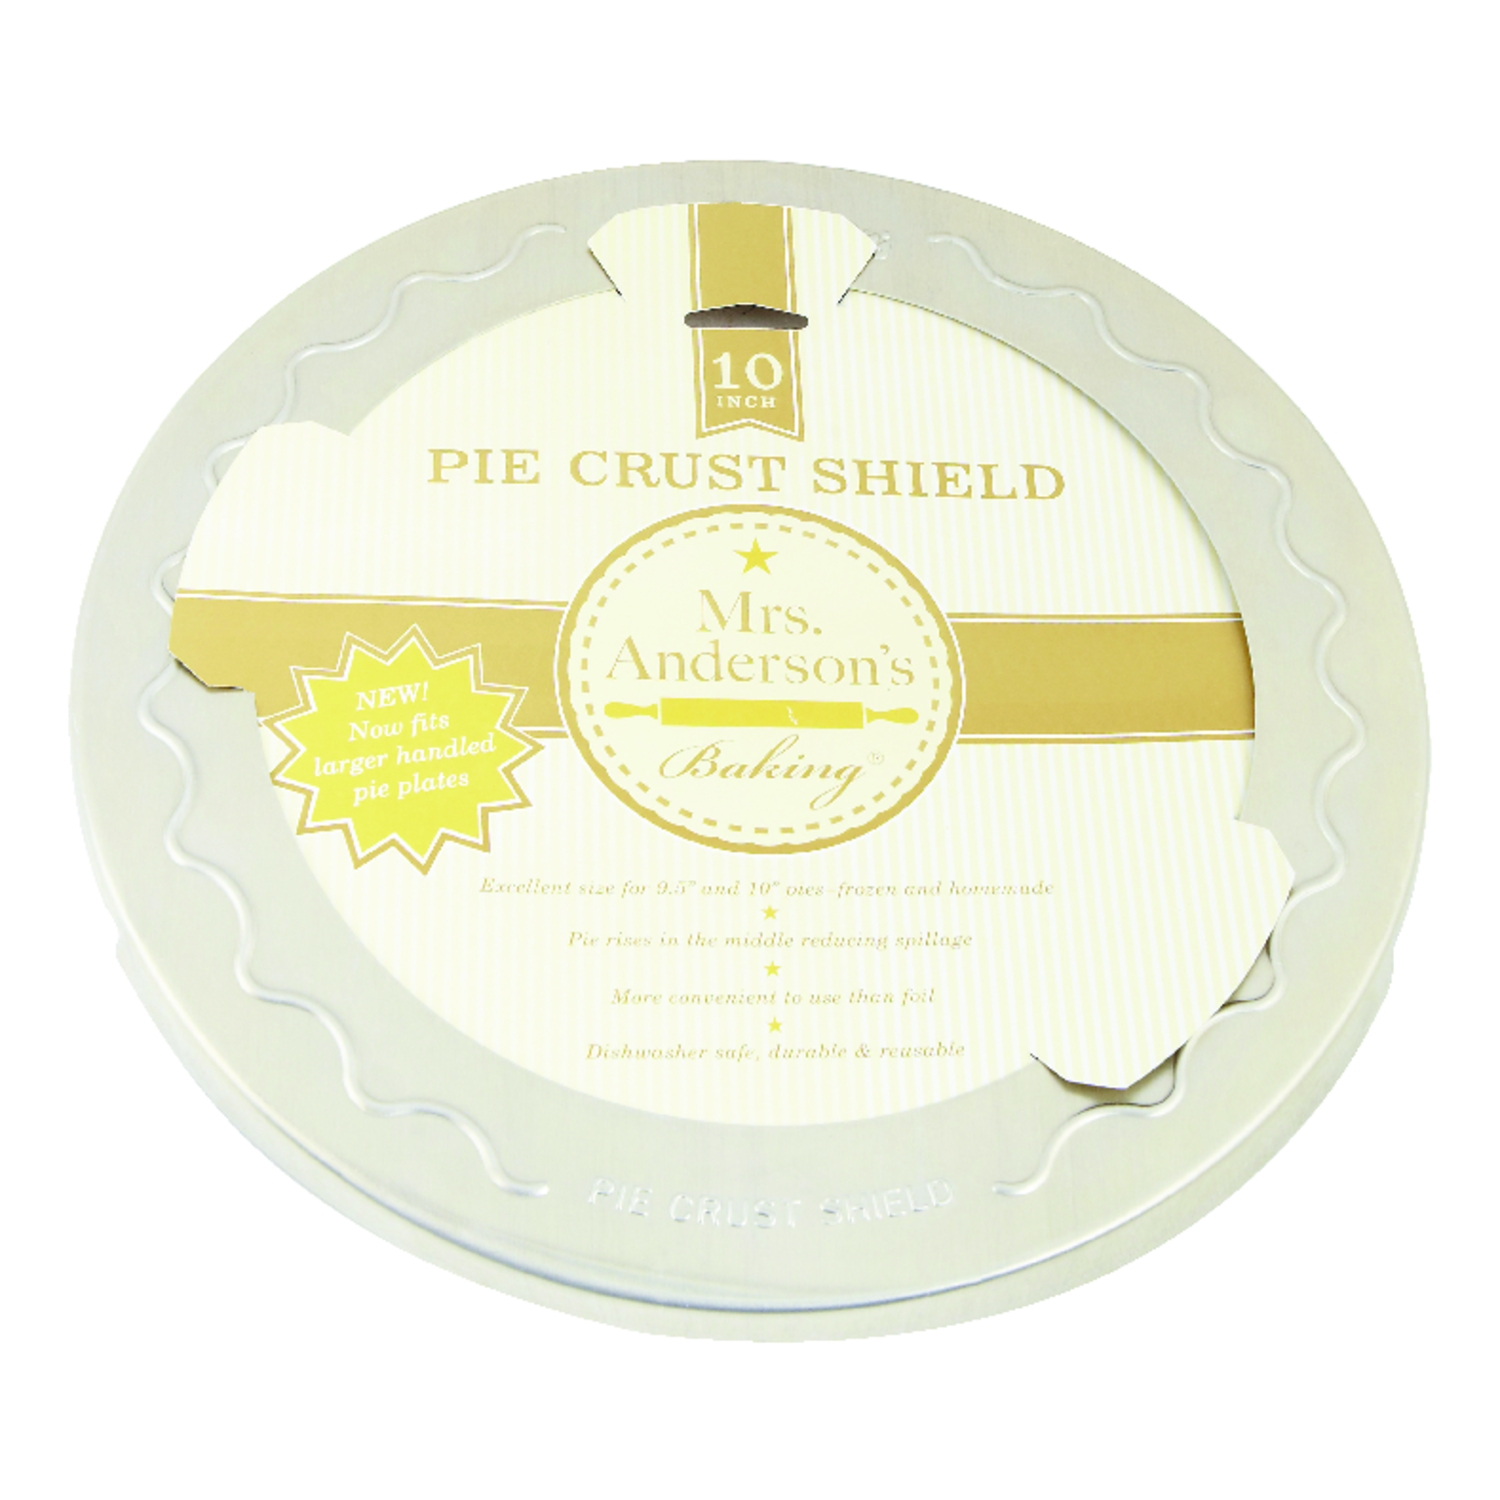 Mrs. Anderson's  Baking  10 in. L Pie Crust Shield  Silver